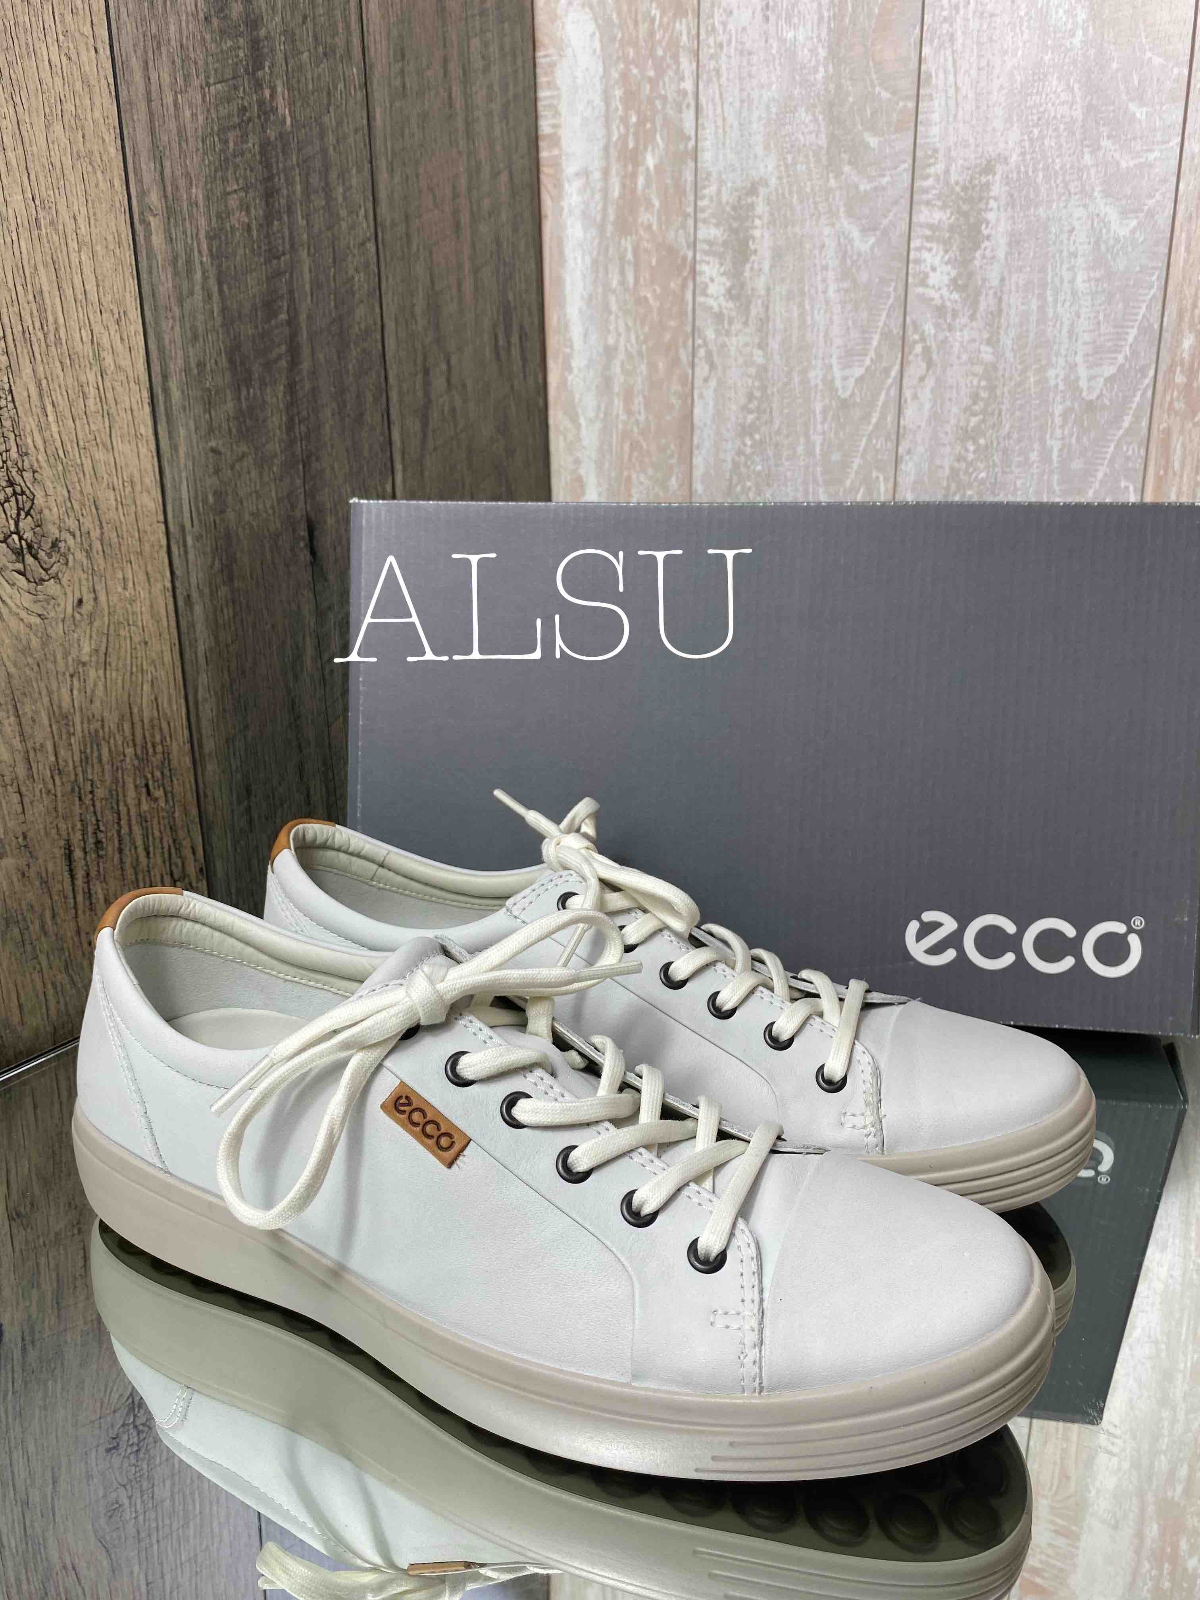 Sneakers Fashion Men's ECCO Soft 7 M White Leather Low Top 430004 51334